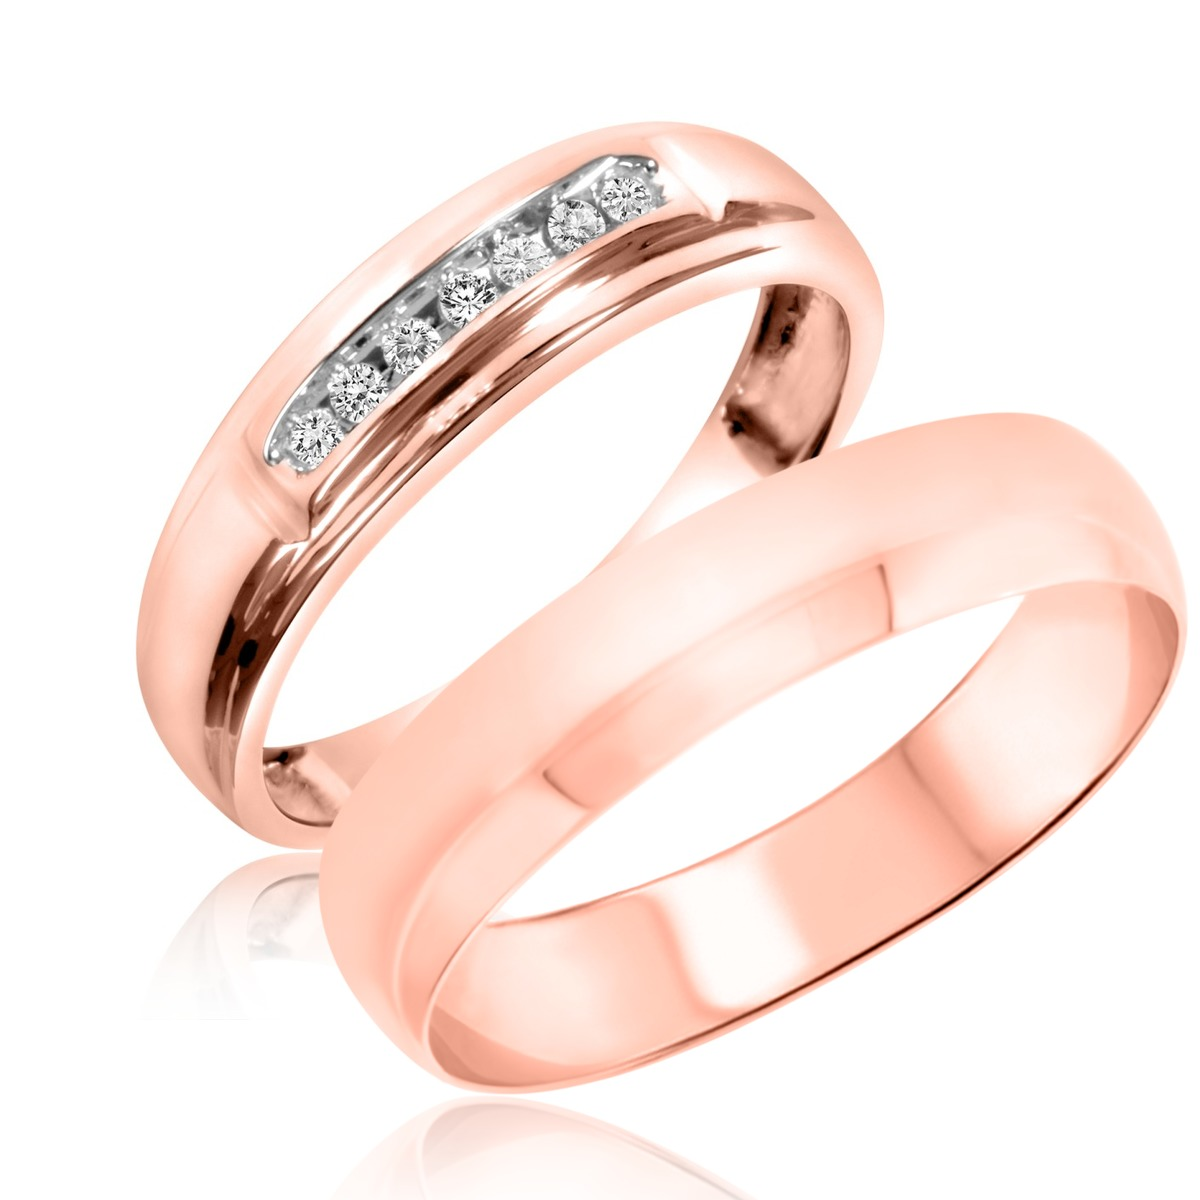 1/20 Carat T.W. Round Cut Diamond His and Hers Wedding Band Set 10K Rose Gold